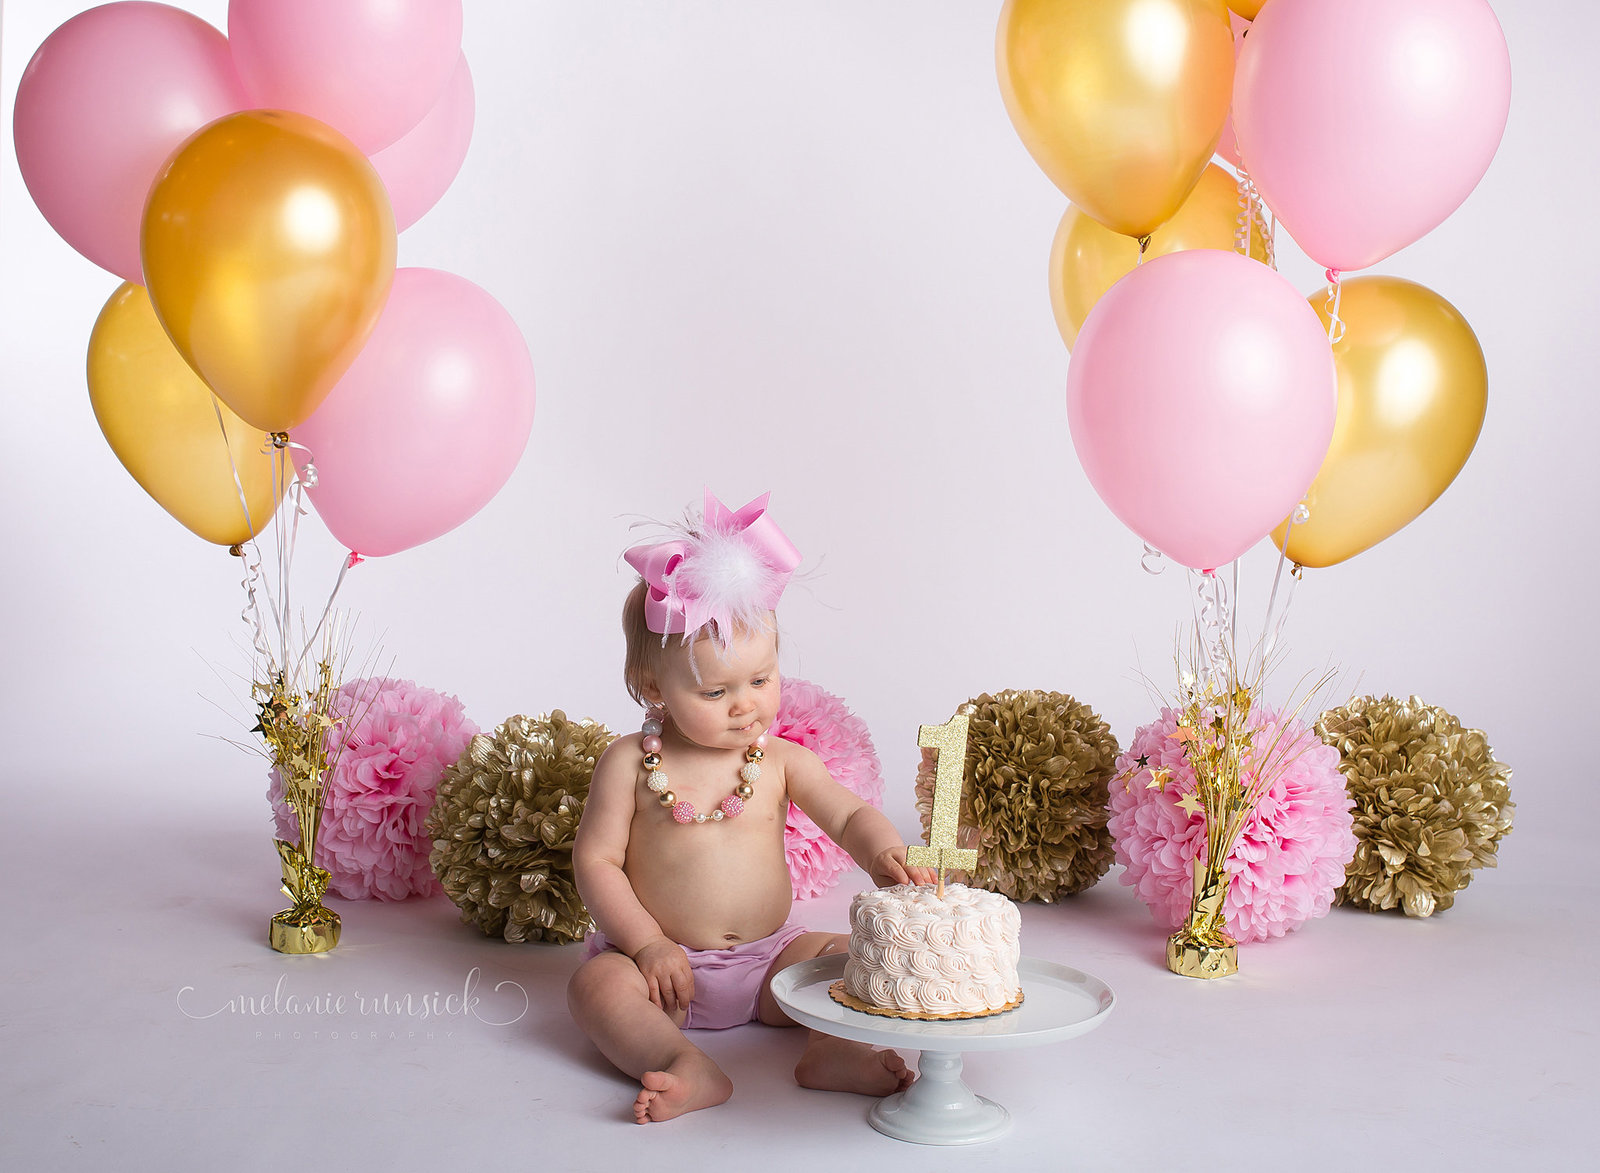 cake-smash-session-jonesboro-arkansas-melanie-runsick-photography